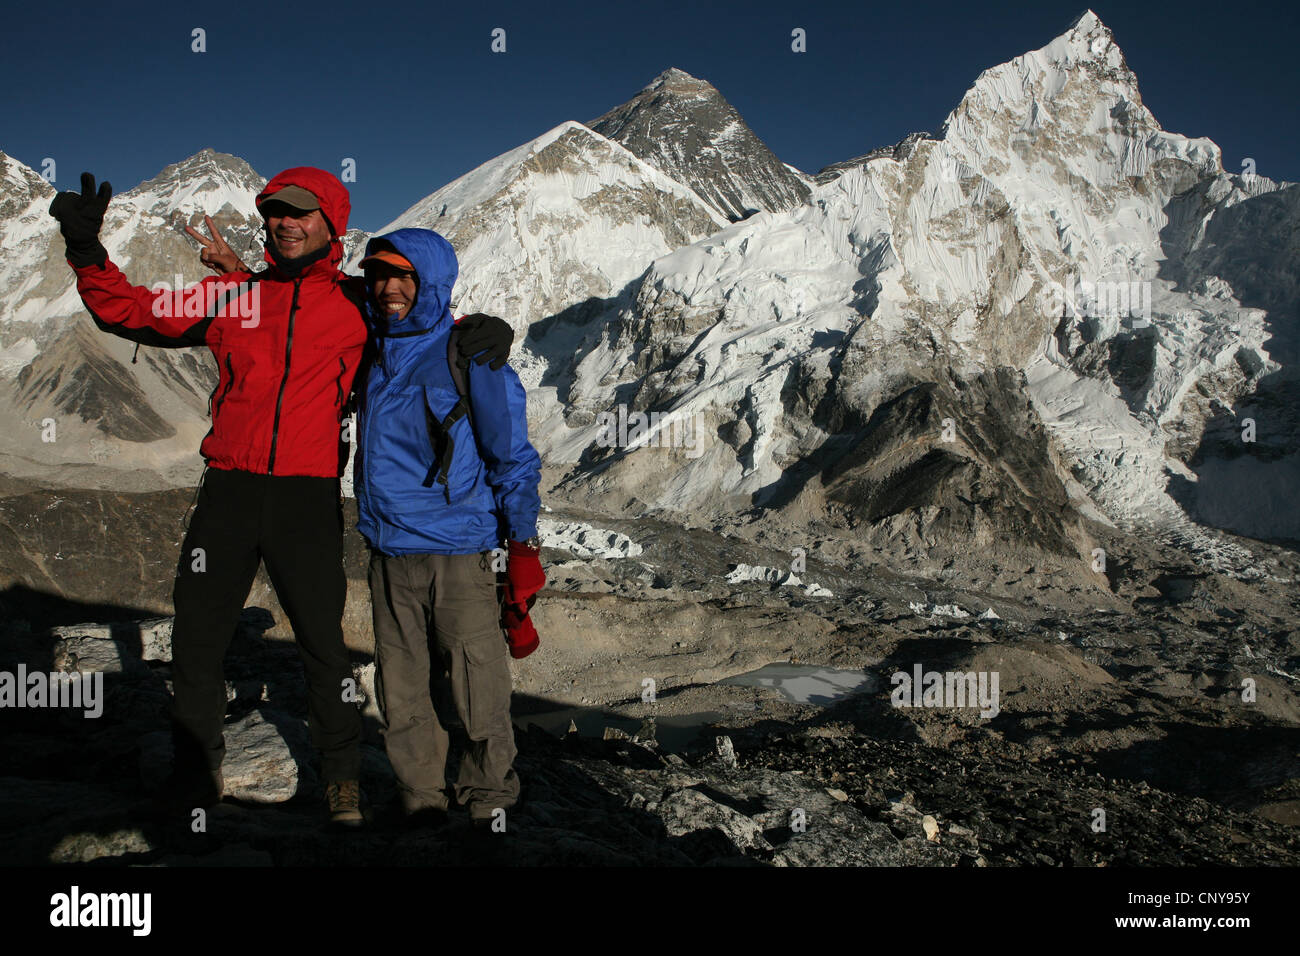 Mount Everest (8,848 m) seen from the summit of Kala Patthar (5,545 m) in Khumbu region in the Himalayas, Nepal. - Stock Image